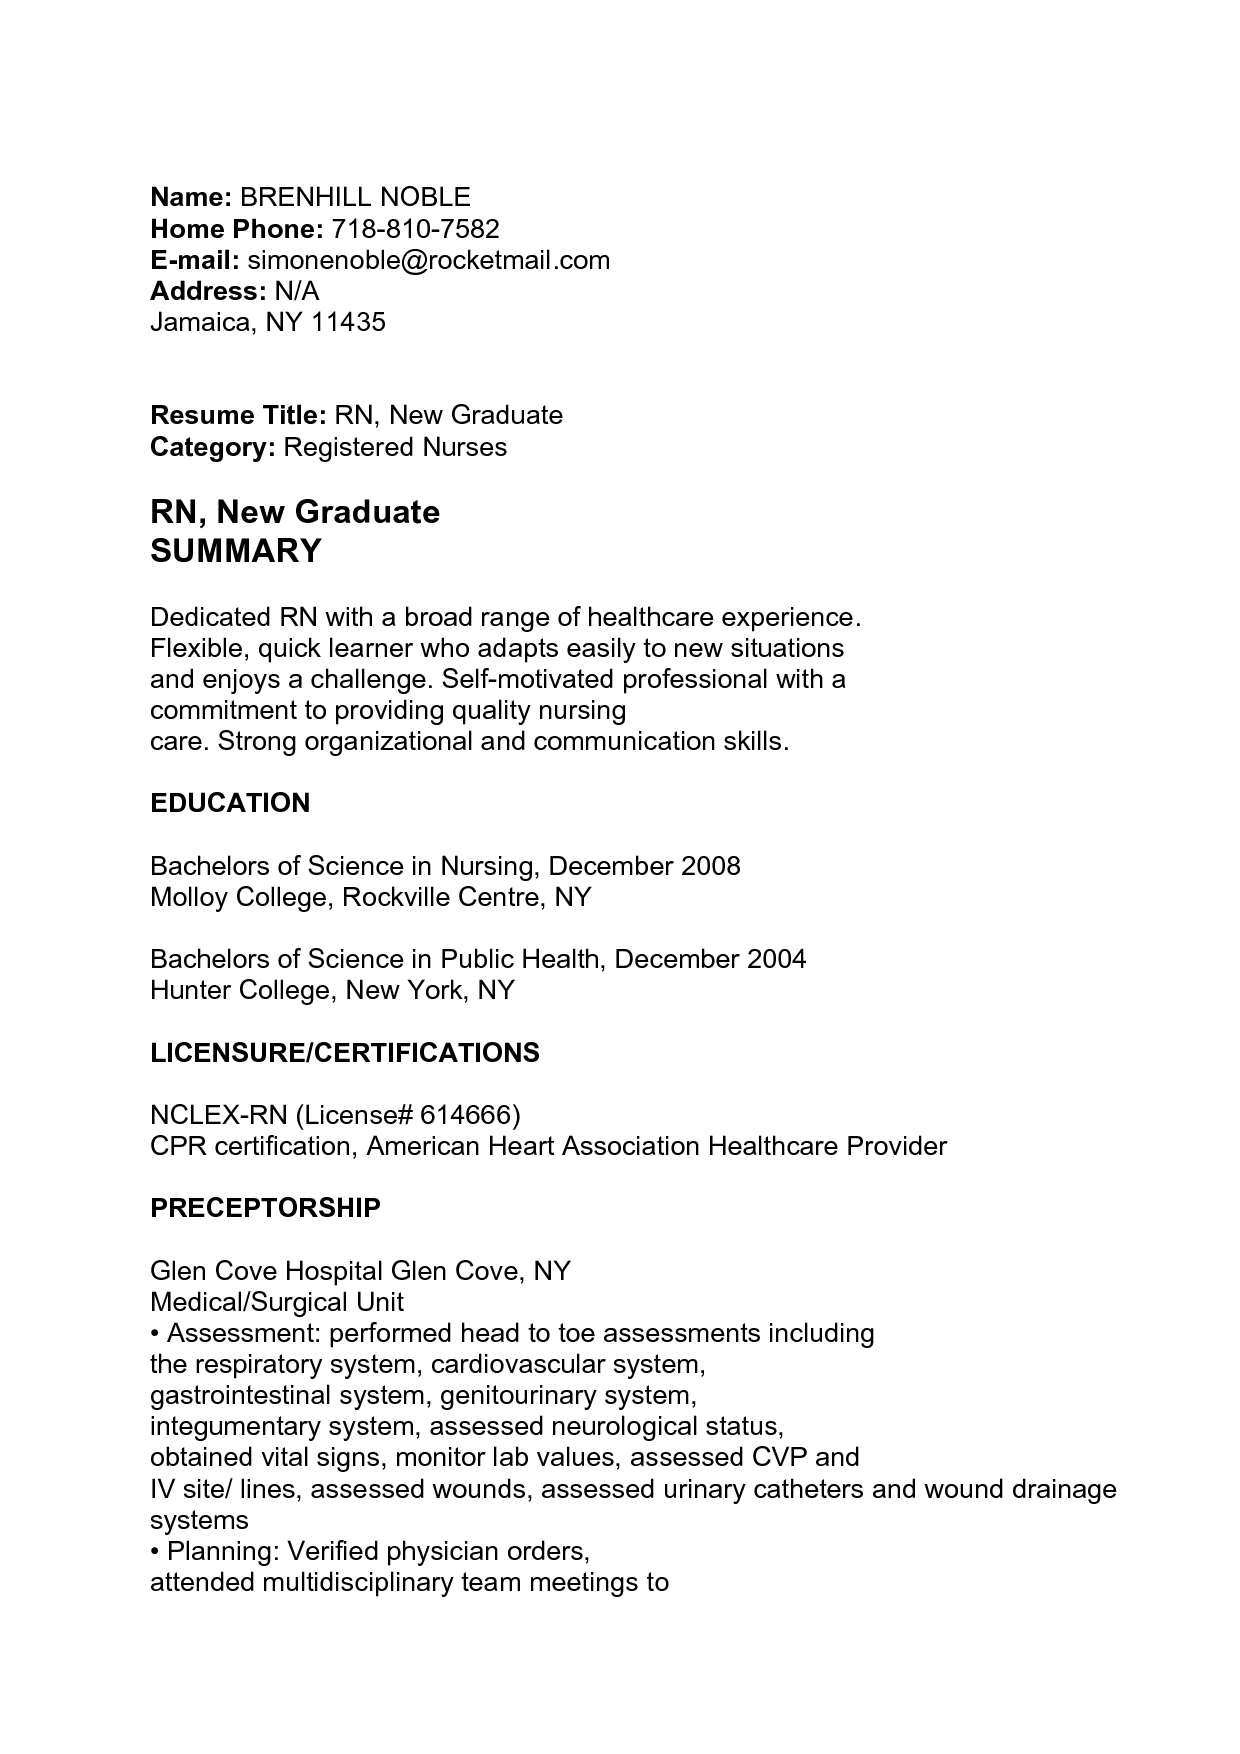 Rn New Graduate Summary Cakepins Com Nursing Resume